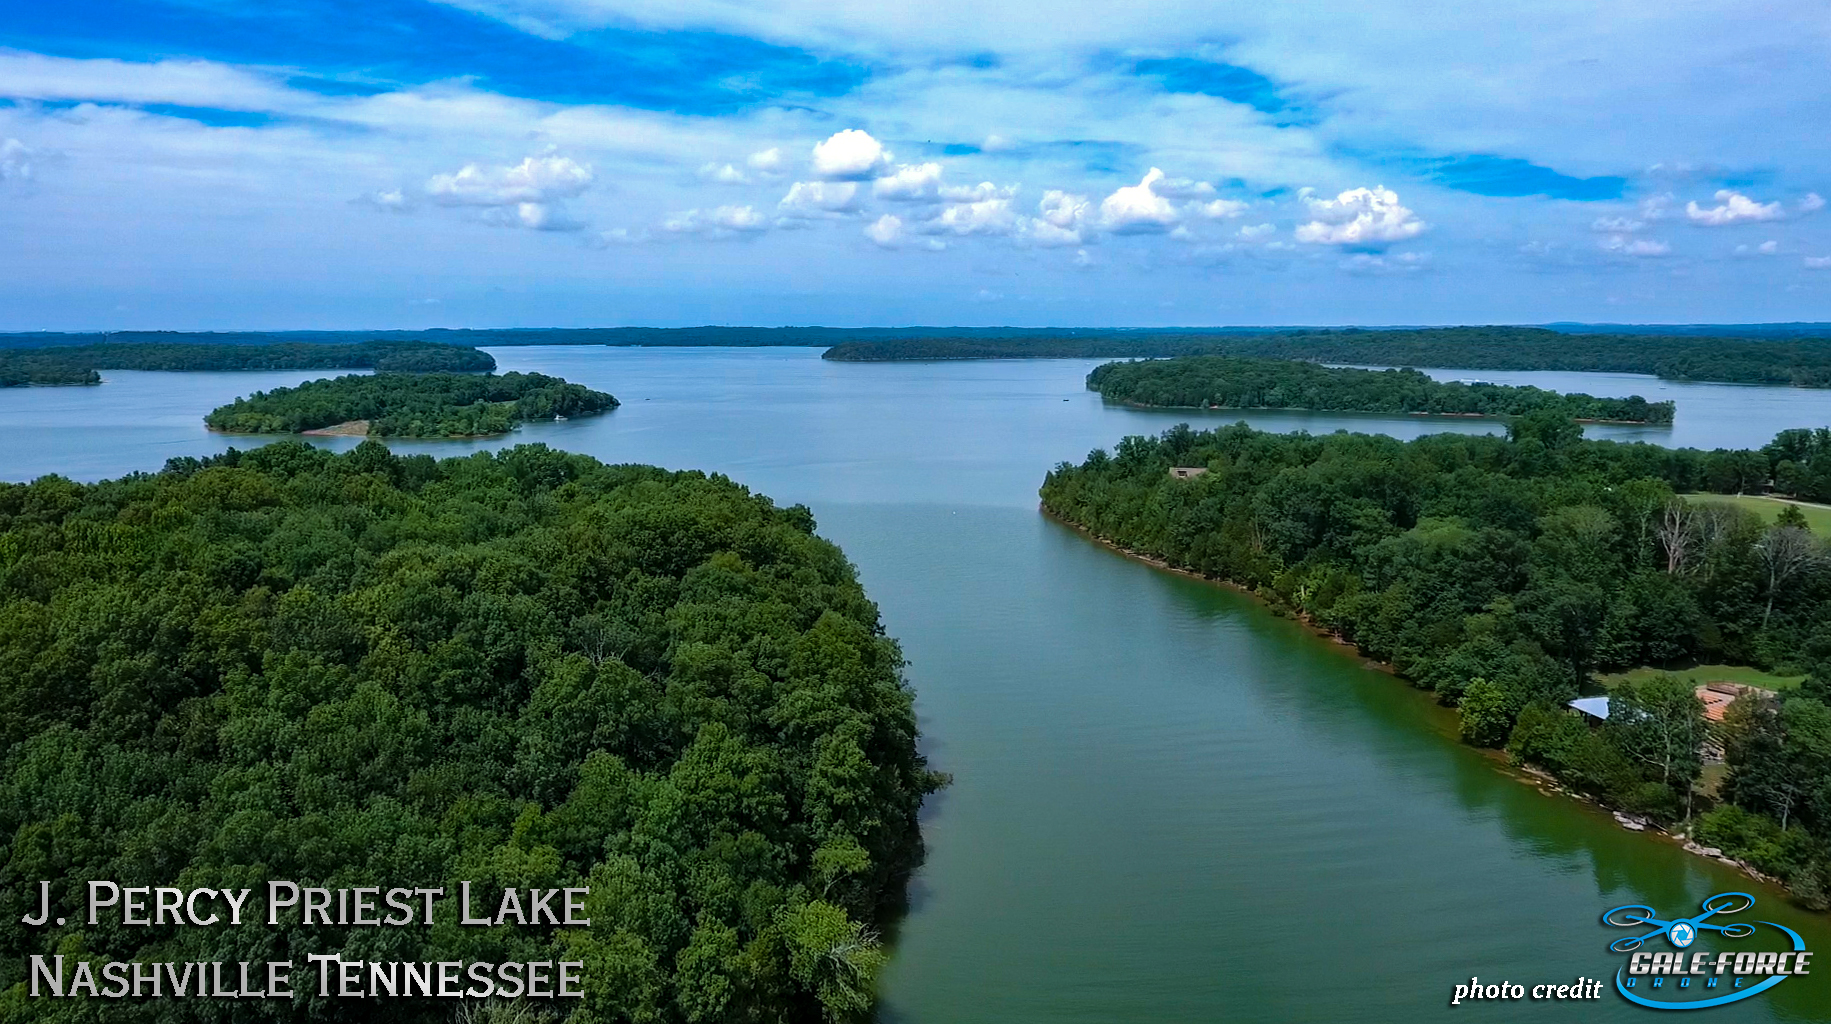 galeforcedrone.com j. percy priest lake nashville tennessee